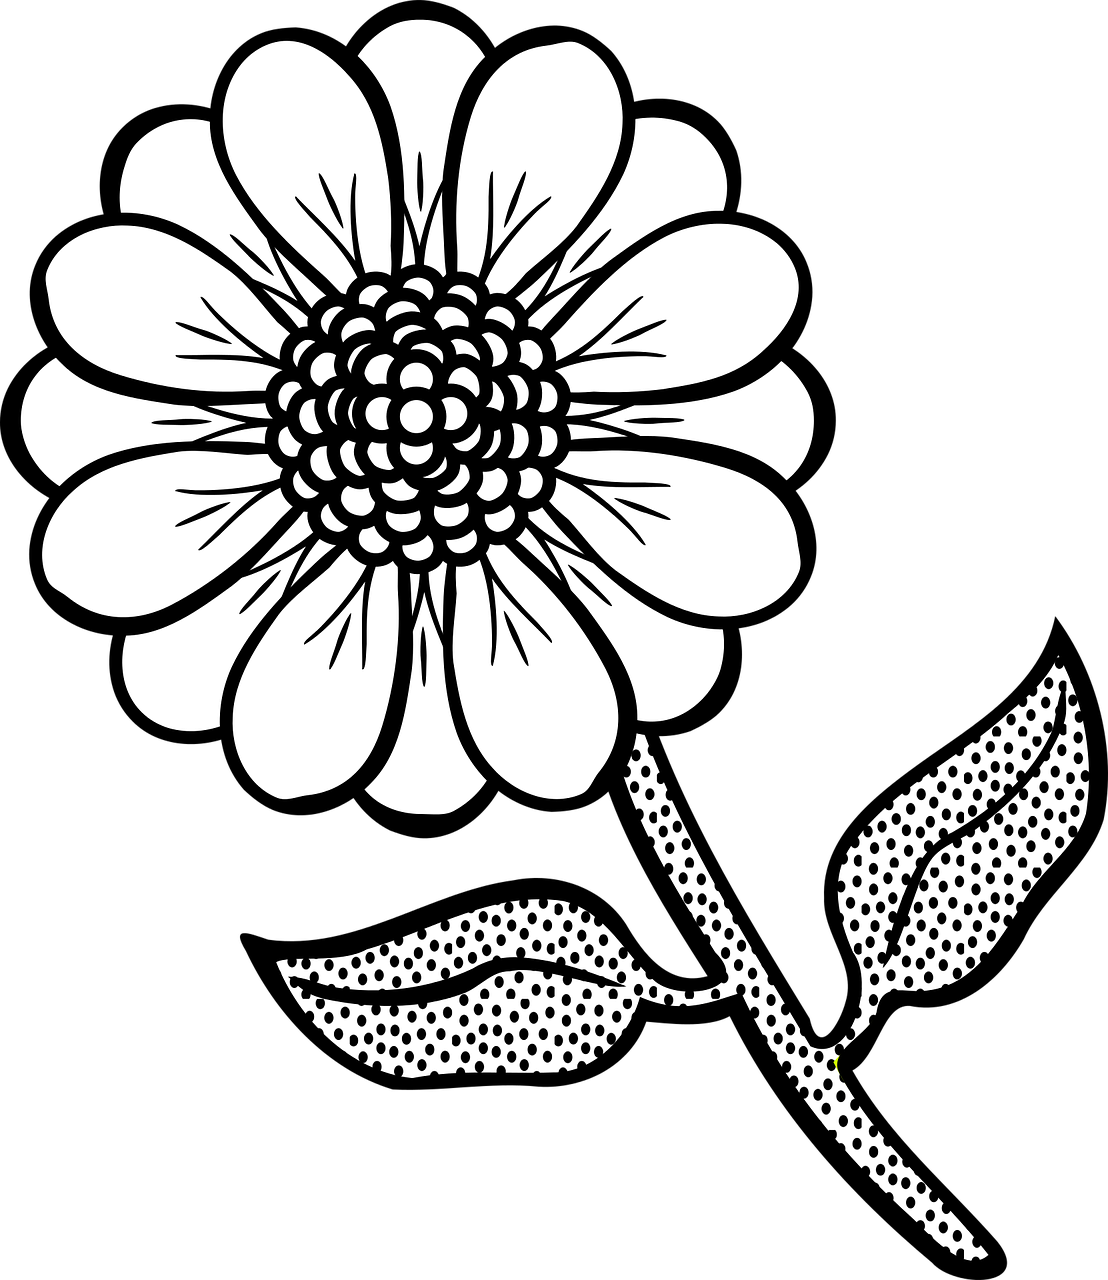 Wildflowers drawing - coloring pages free for kids 4